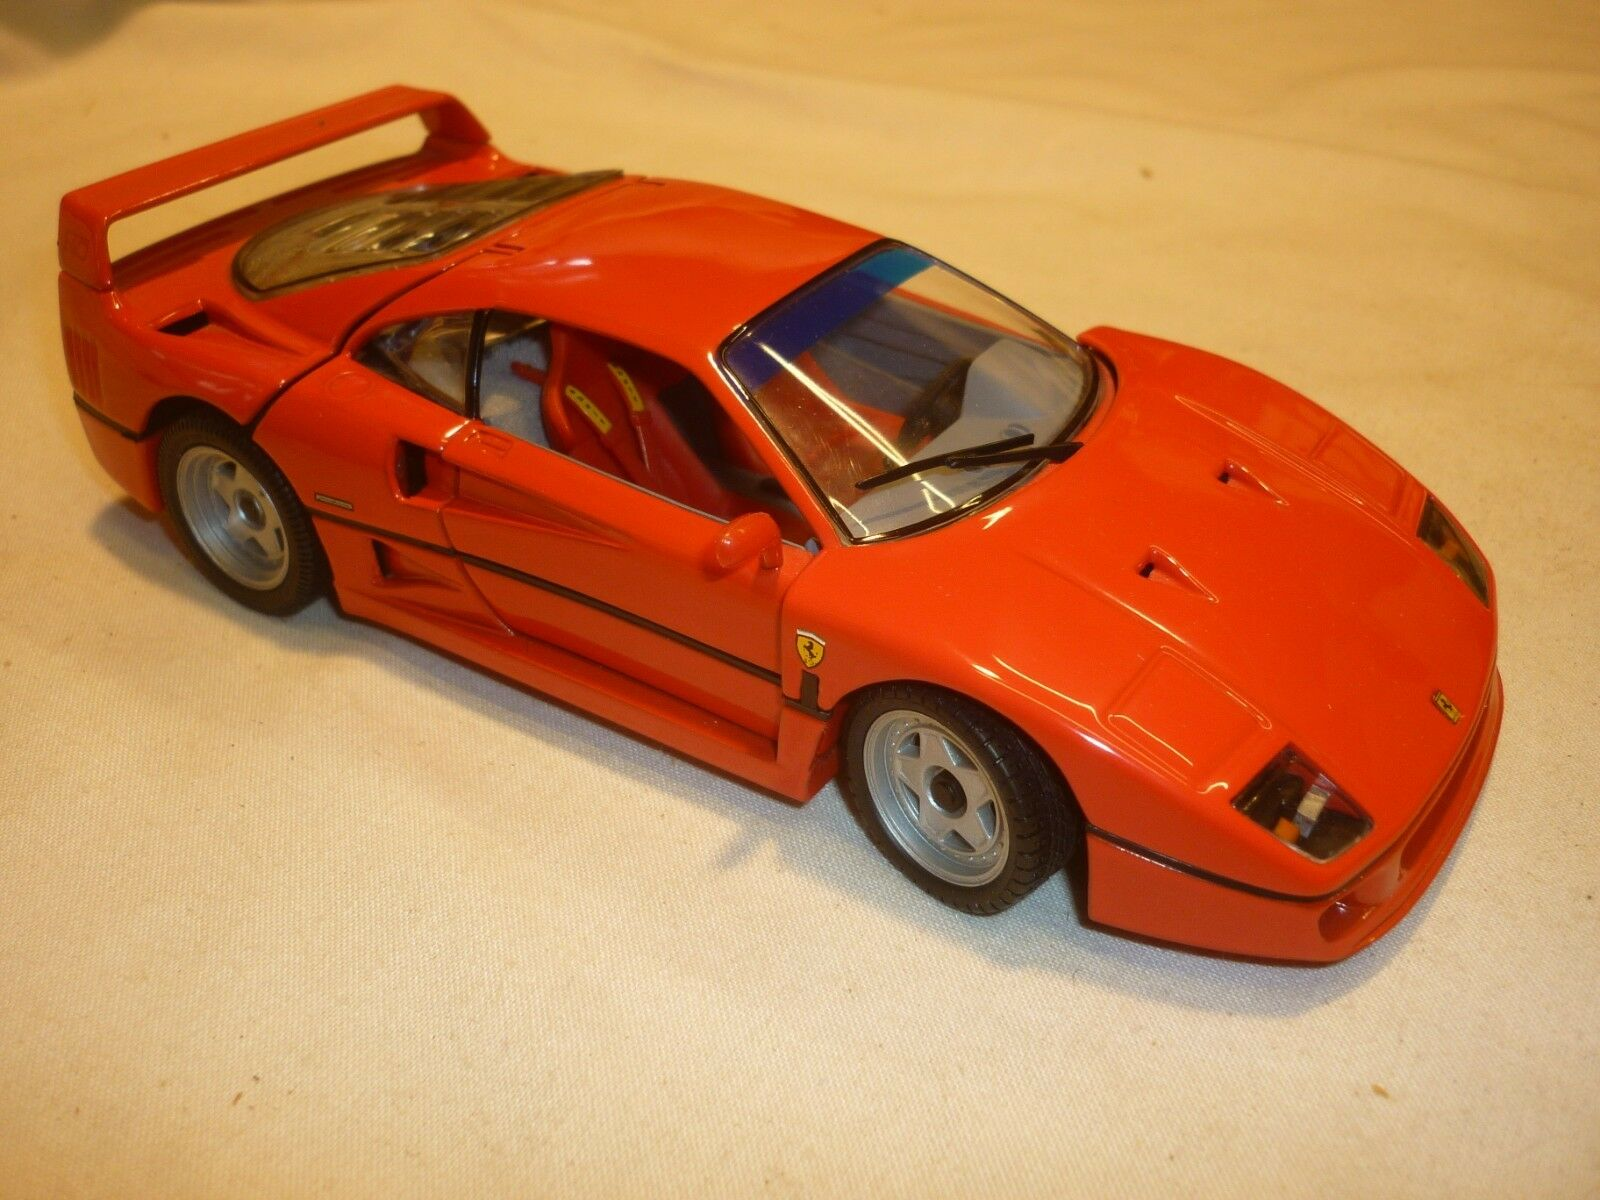 A Franklin mint scale model of a 1989 Ferrari F40. no Box   no paperwork